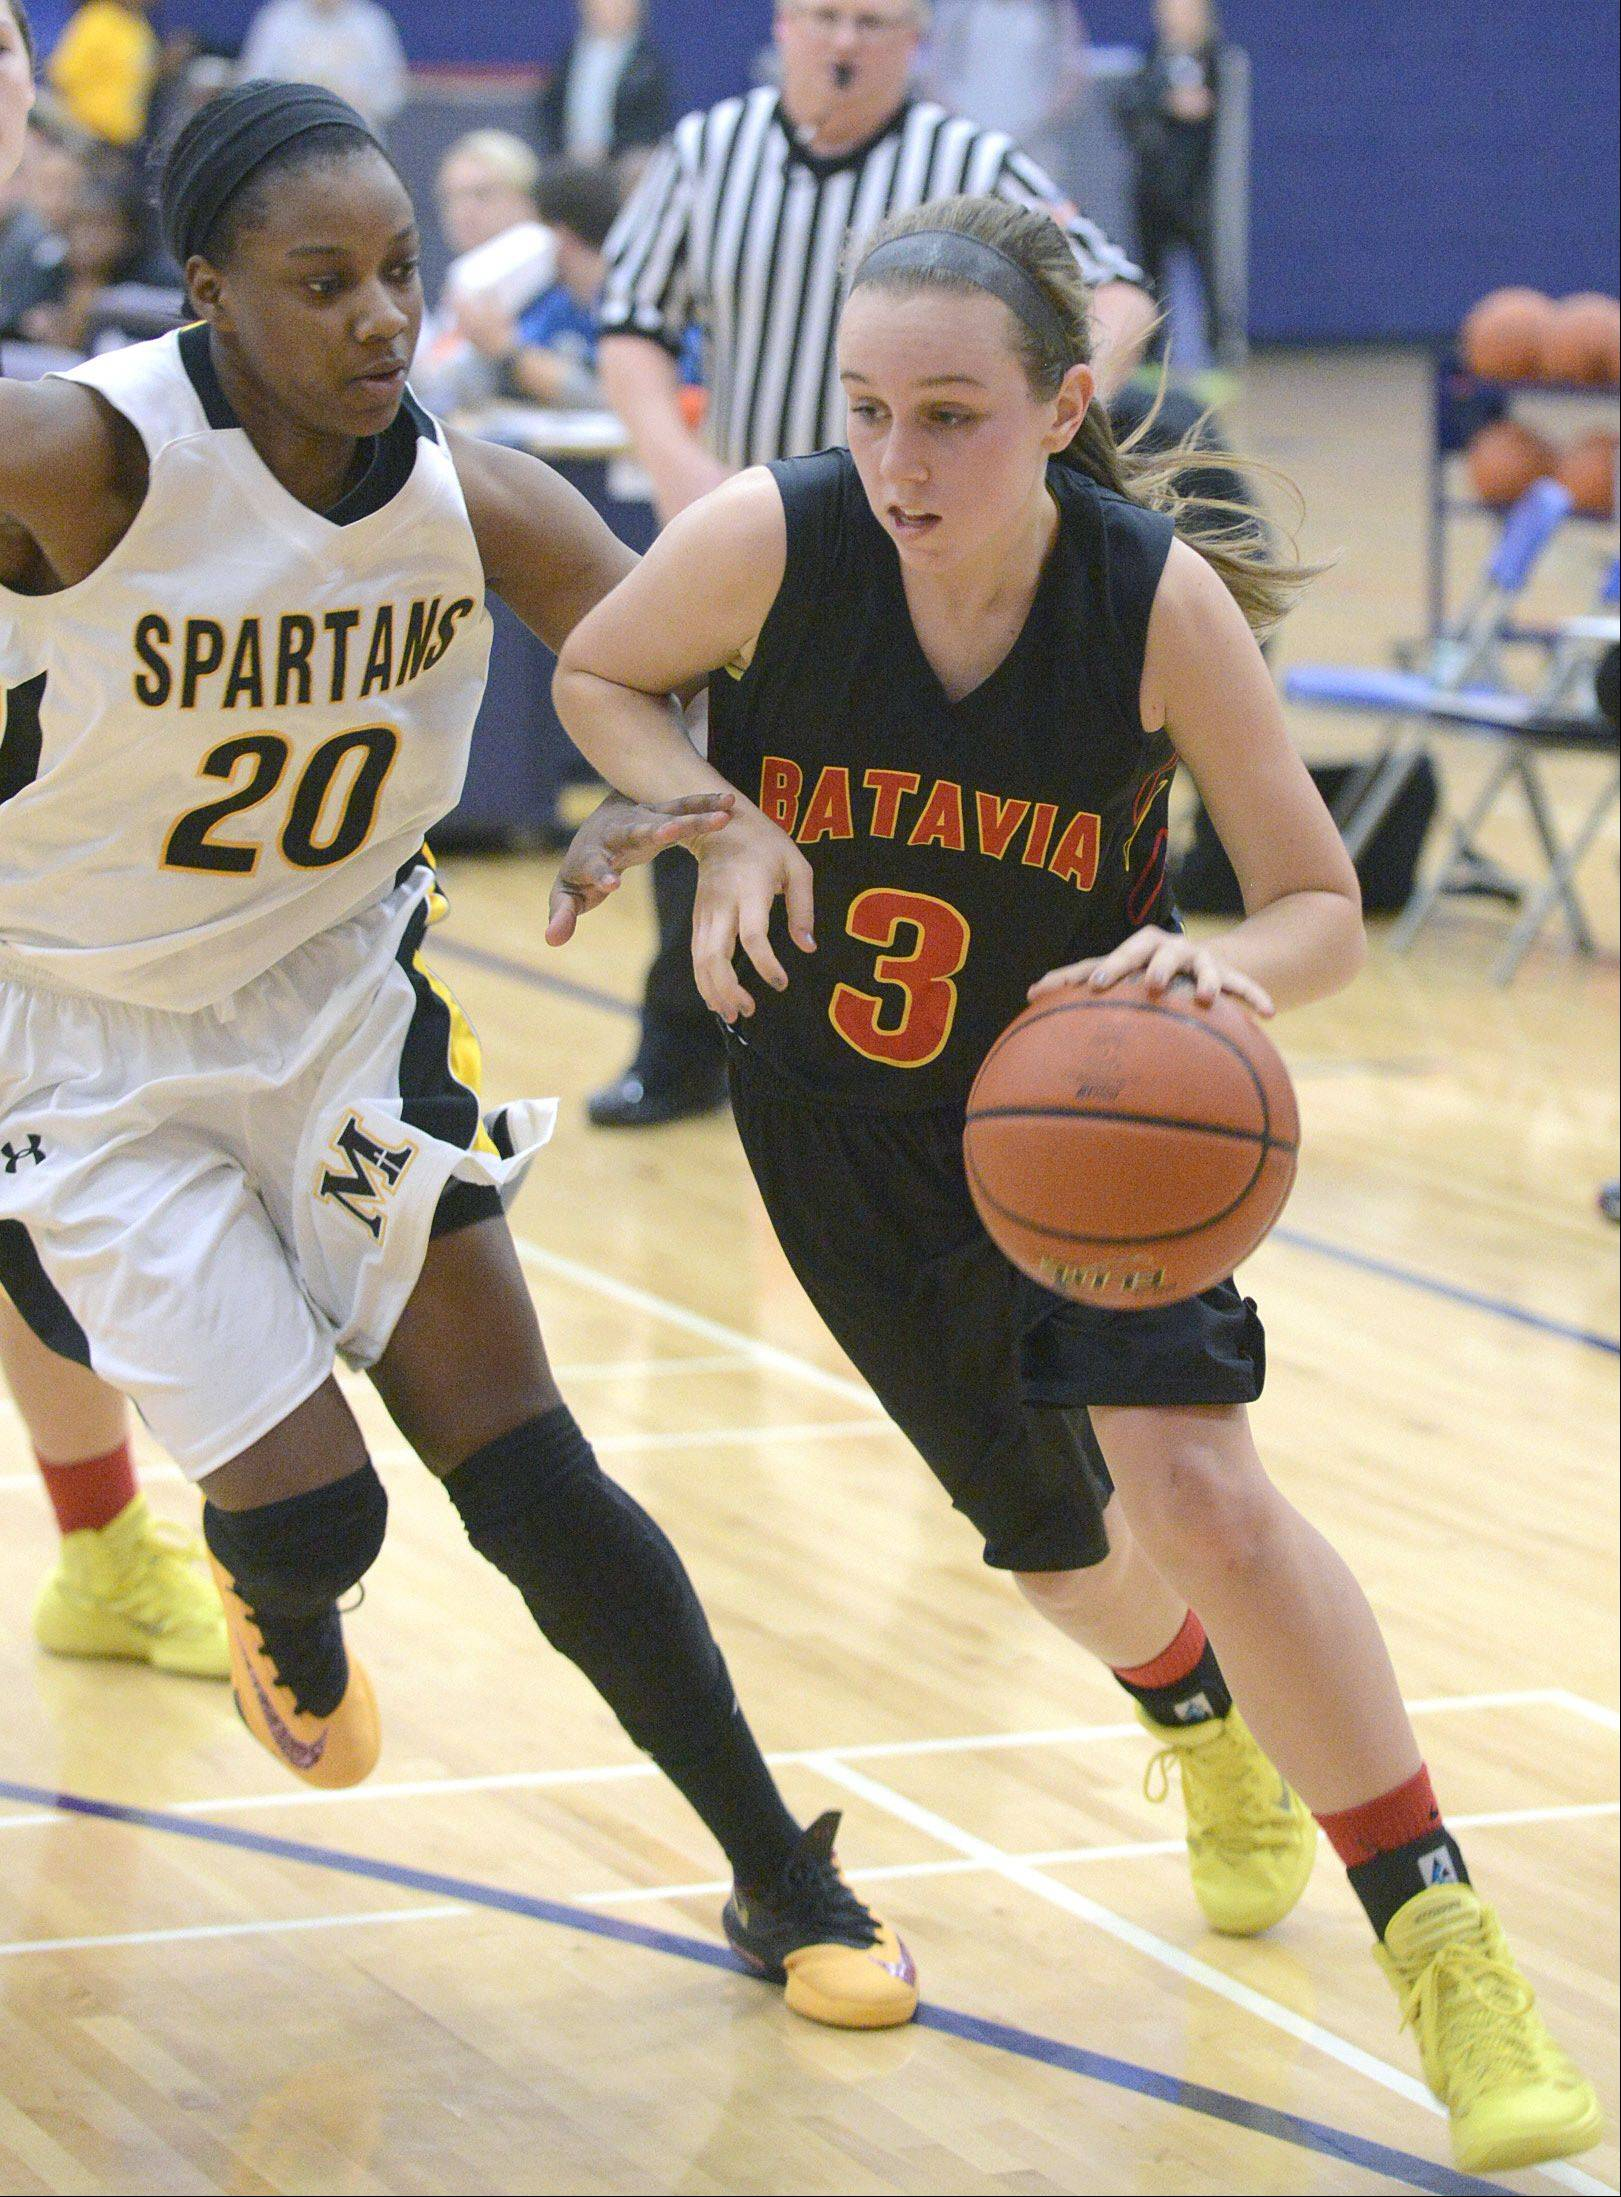 Batavia's Bethany Orman drives the ball to the hoop around Marian Catholic's Dajhae Mullins in the third quarter.